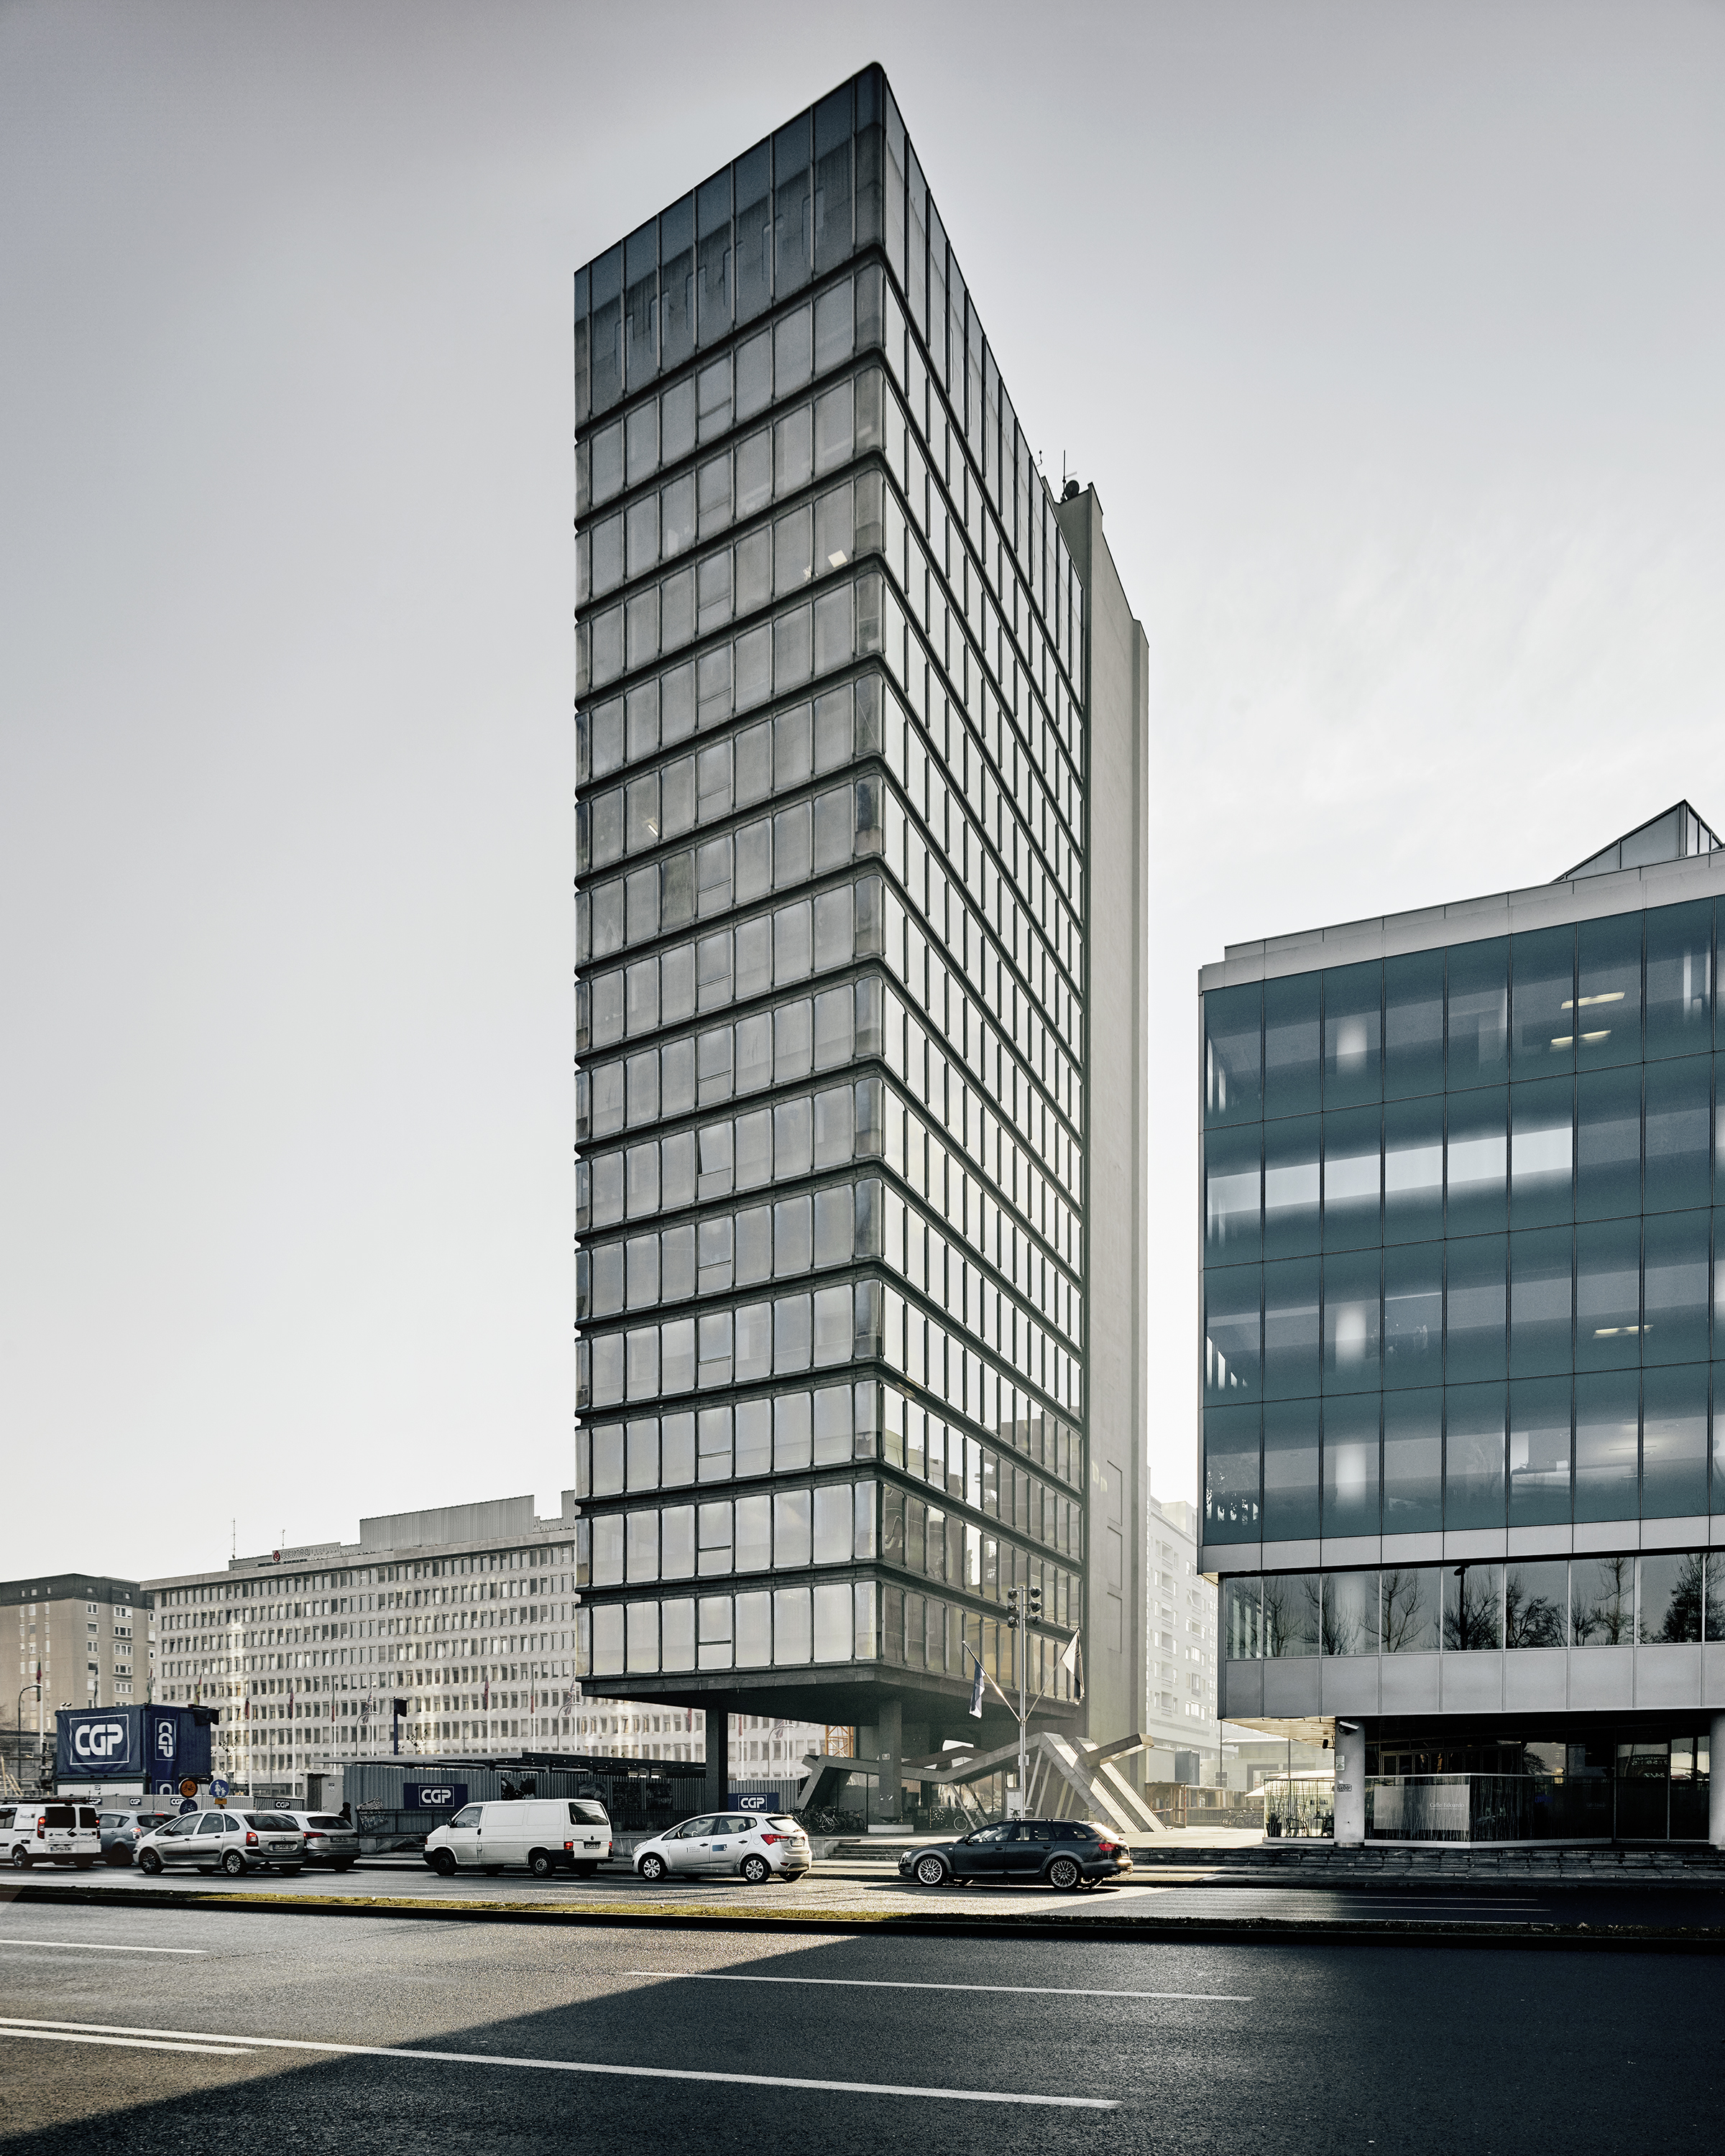 Milan Mihelič. S2 Office Tower. 1972–78. Ljubljana, Slovenië. Foto Valentin Jeck, commissioned by The Museum of Modern Art, 2016